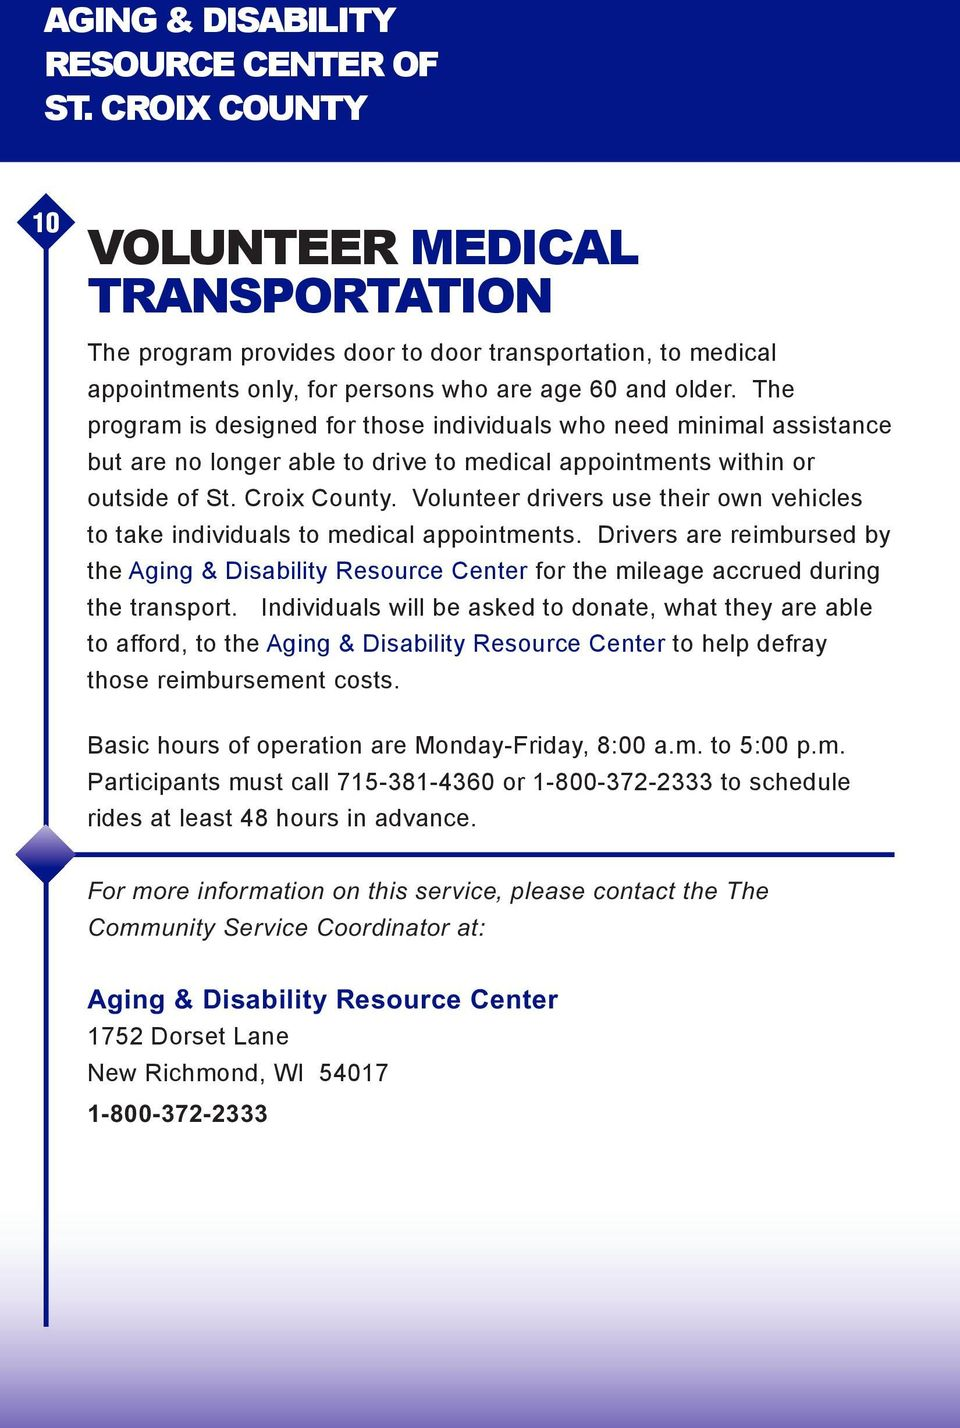 Volunteer drivers use their own vehicles to take individuals to medical appointments. Drivers are reimbursed by the for the mileage accrued during the transport.